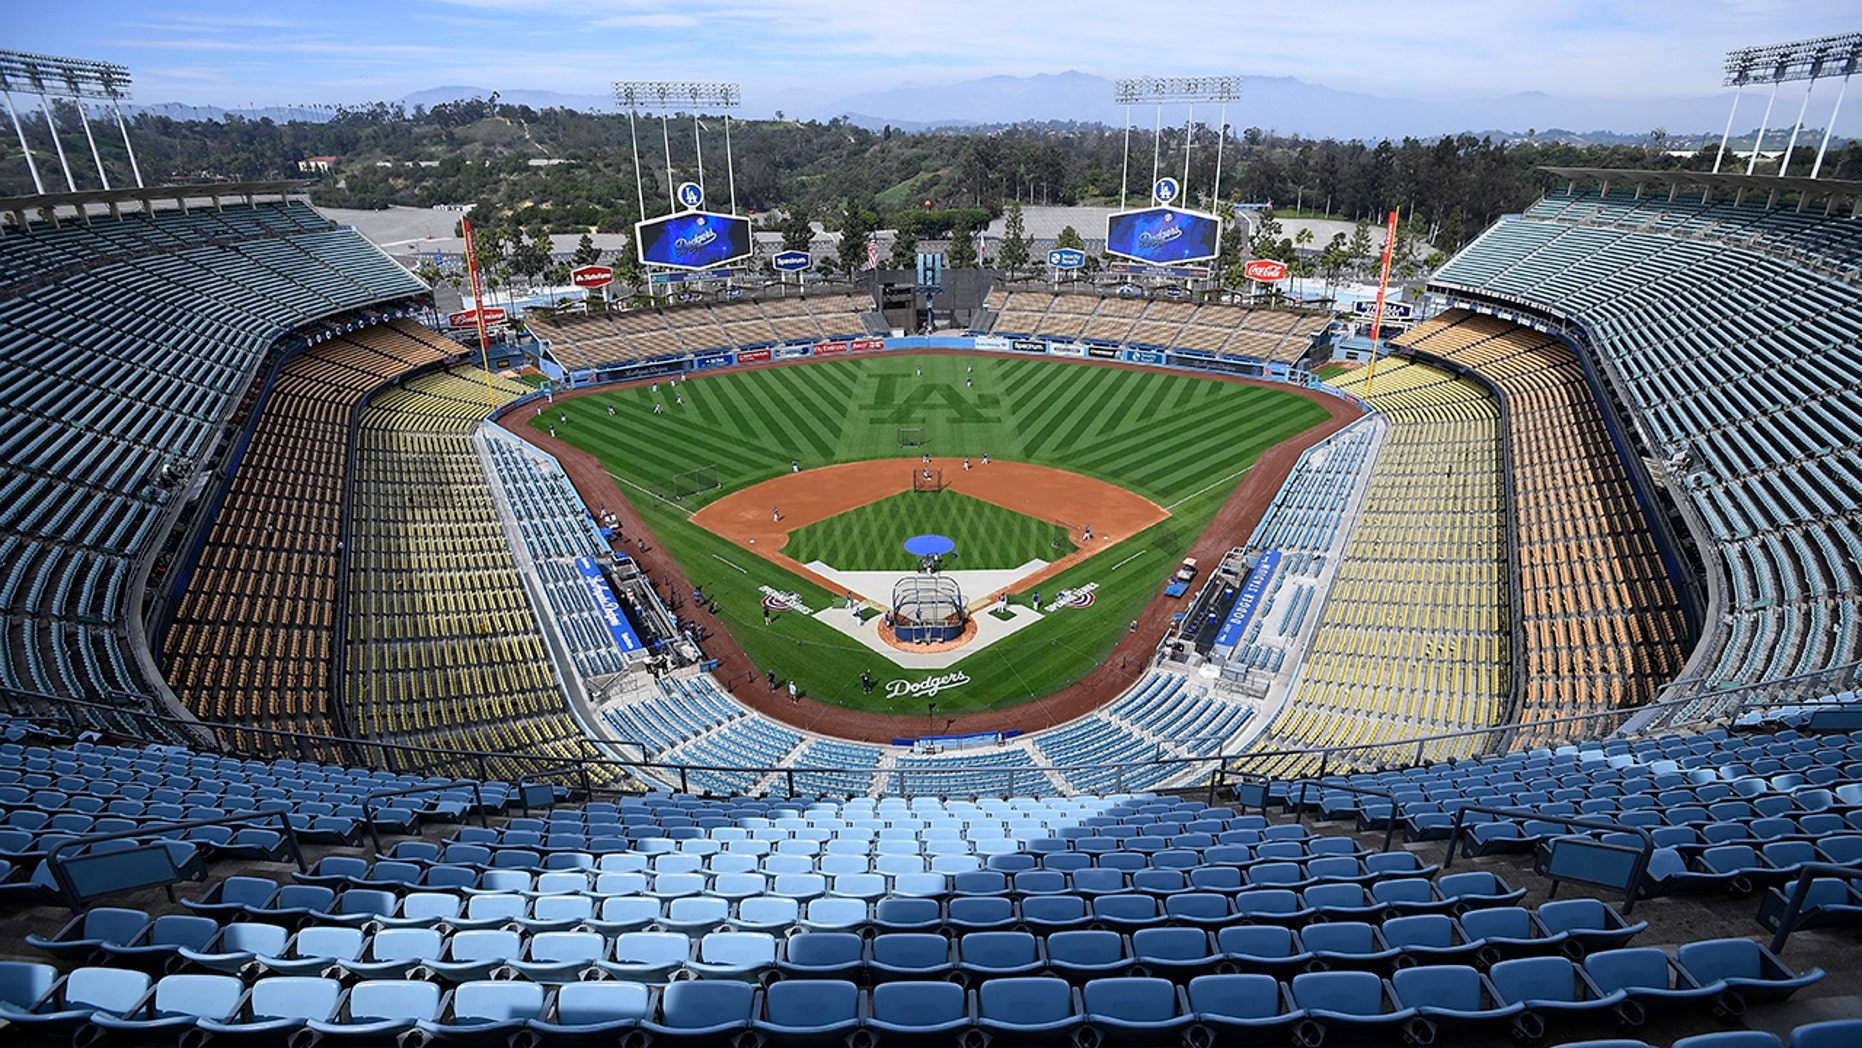 FILE: Overhead view of Dodger Stadium before a game. (Photo by John McCoy/Getty Images)